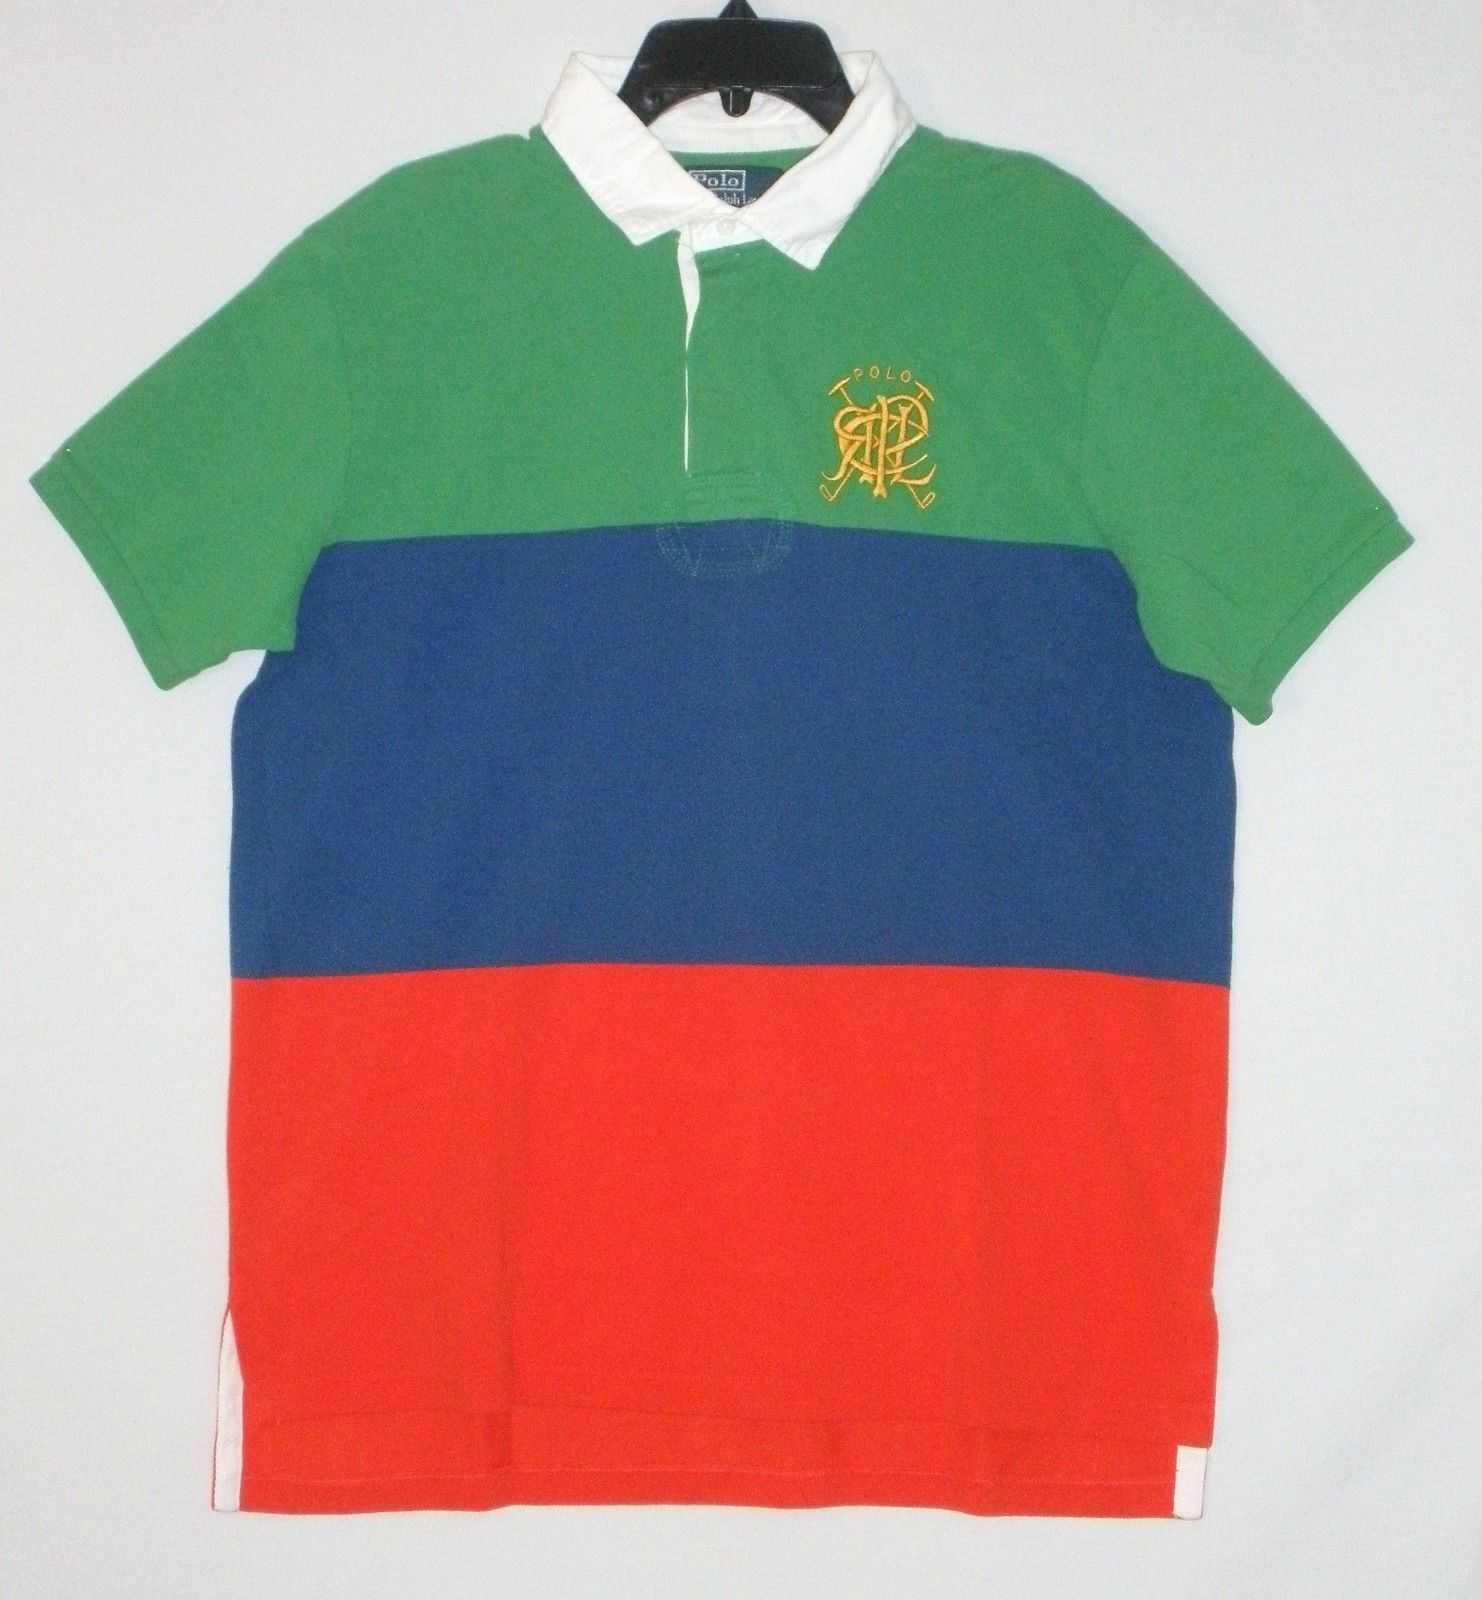 NWT  POLO by RALPH LAUREN Mens Rugby S S Shirt, blueE GREEN orange,  M  L  XL